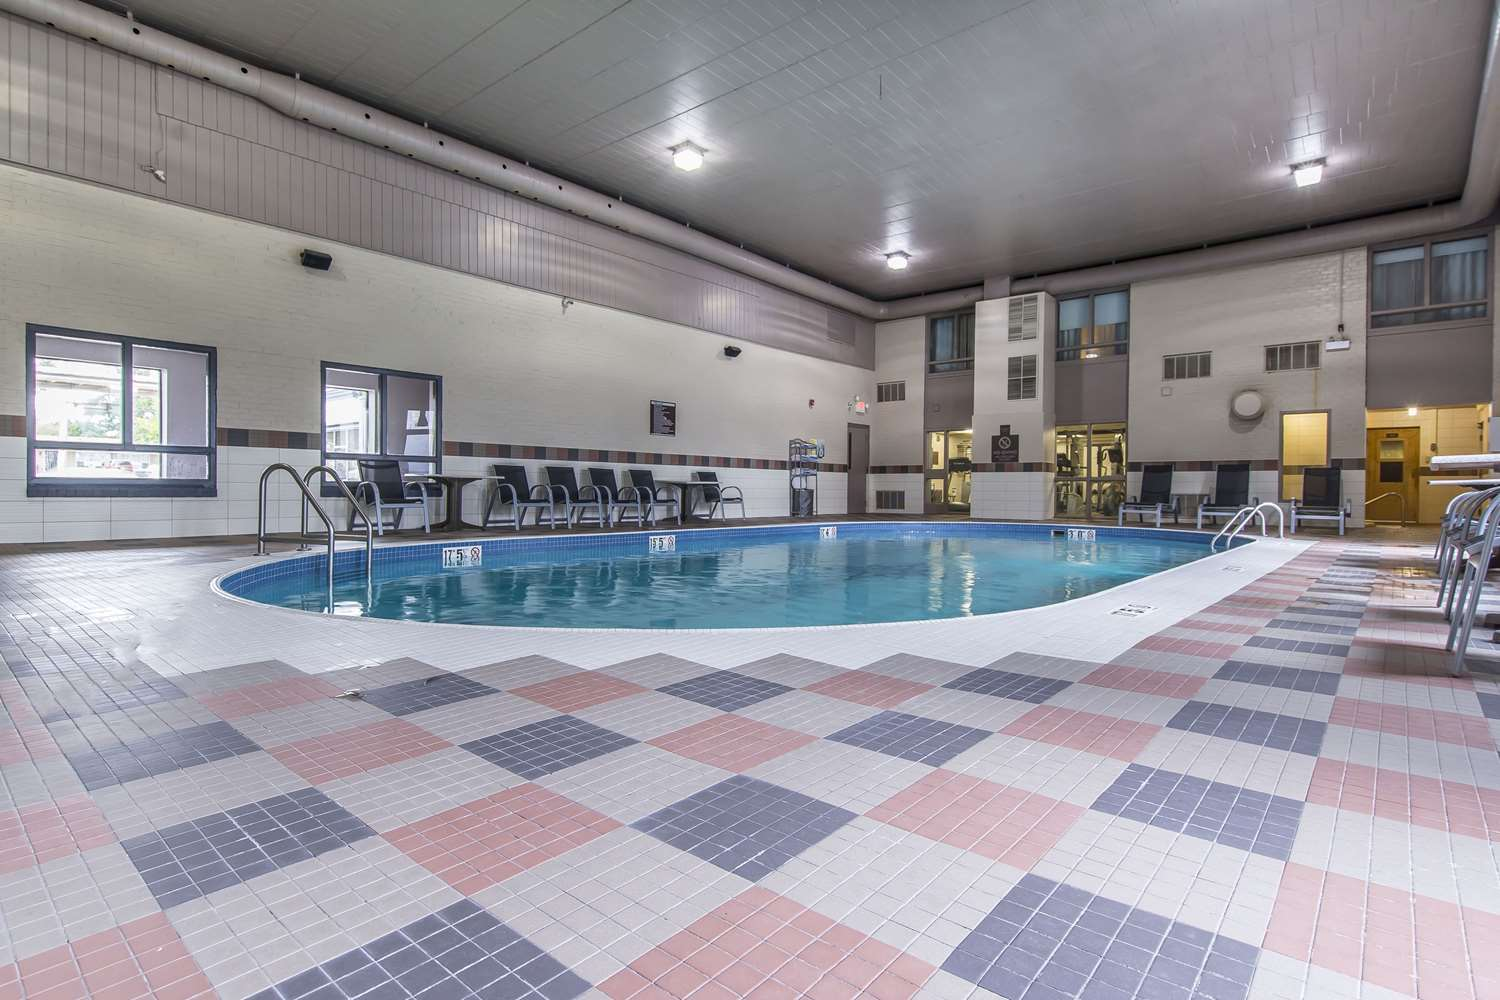 Pool - Quattro Hotel & Conference Centre Sault Ste Marie